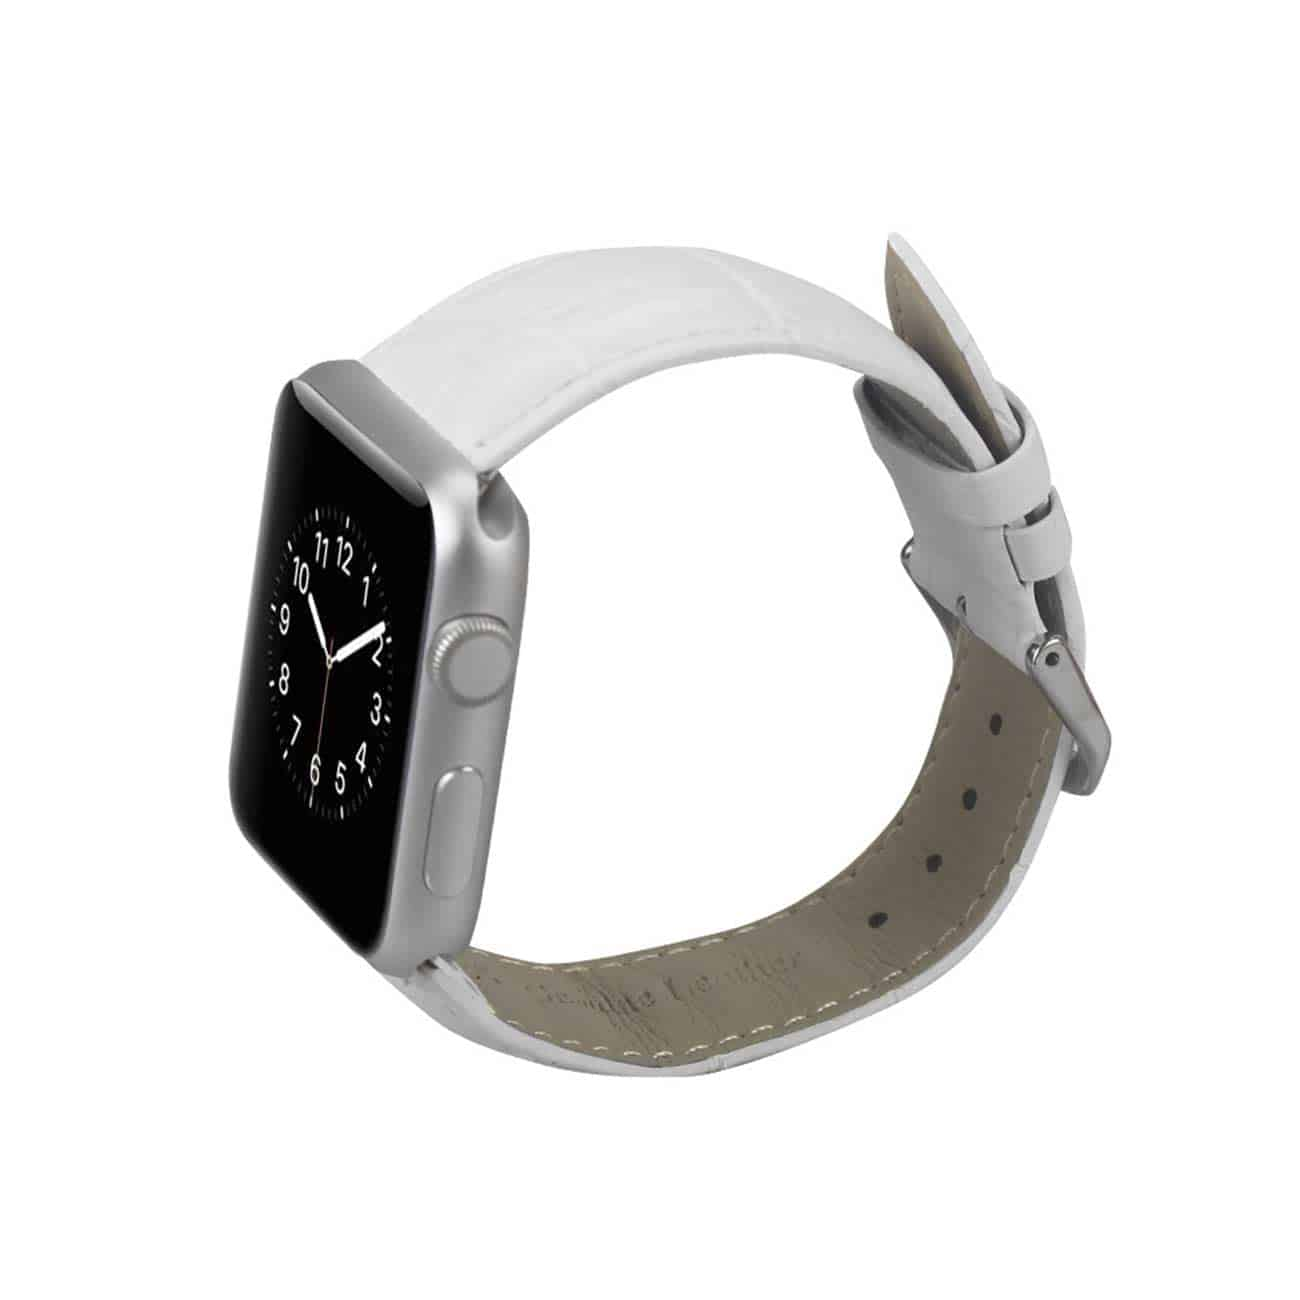 WATCH 38MM GENUINE LEATHER IWATCH BAND STRAP WITHOUT BAND ADAPTORS 38MM IN WHITE